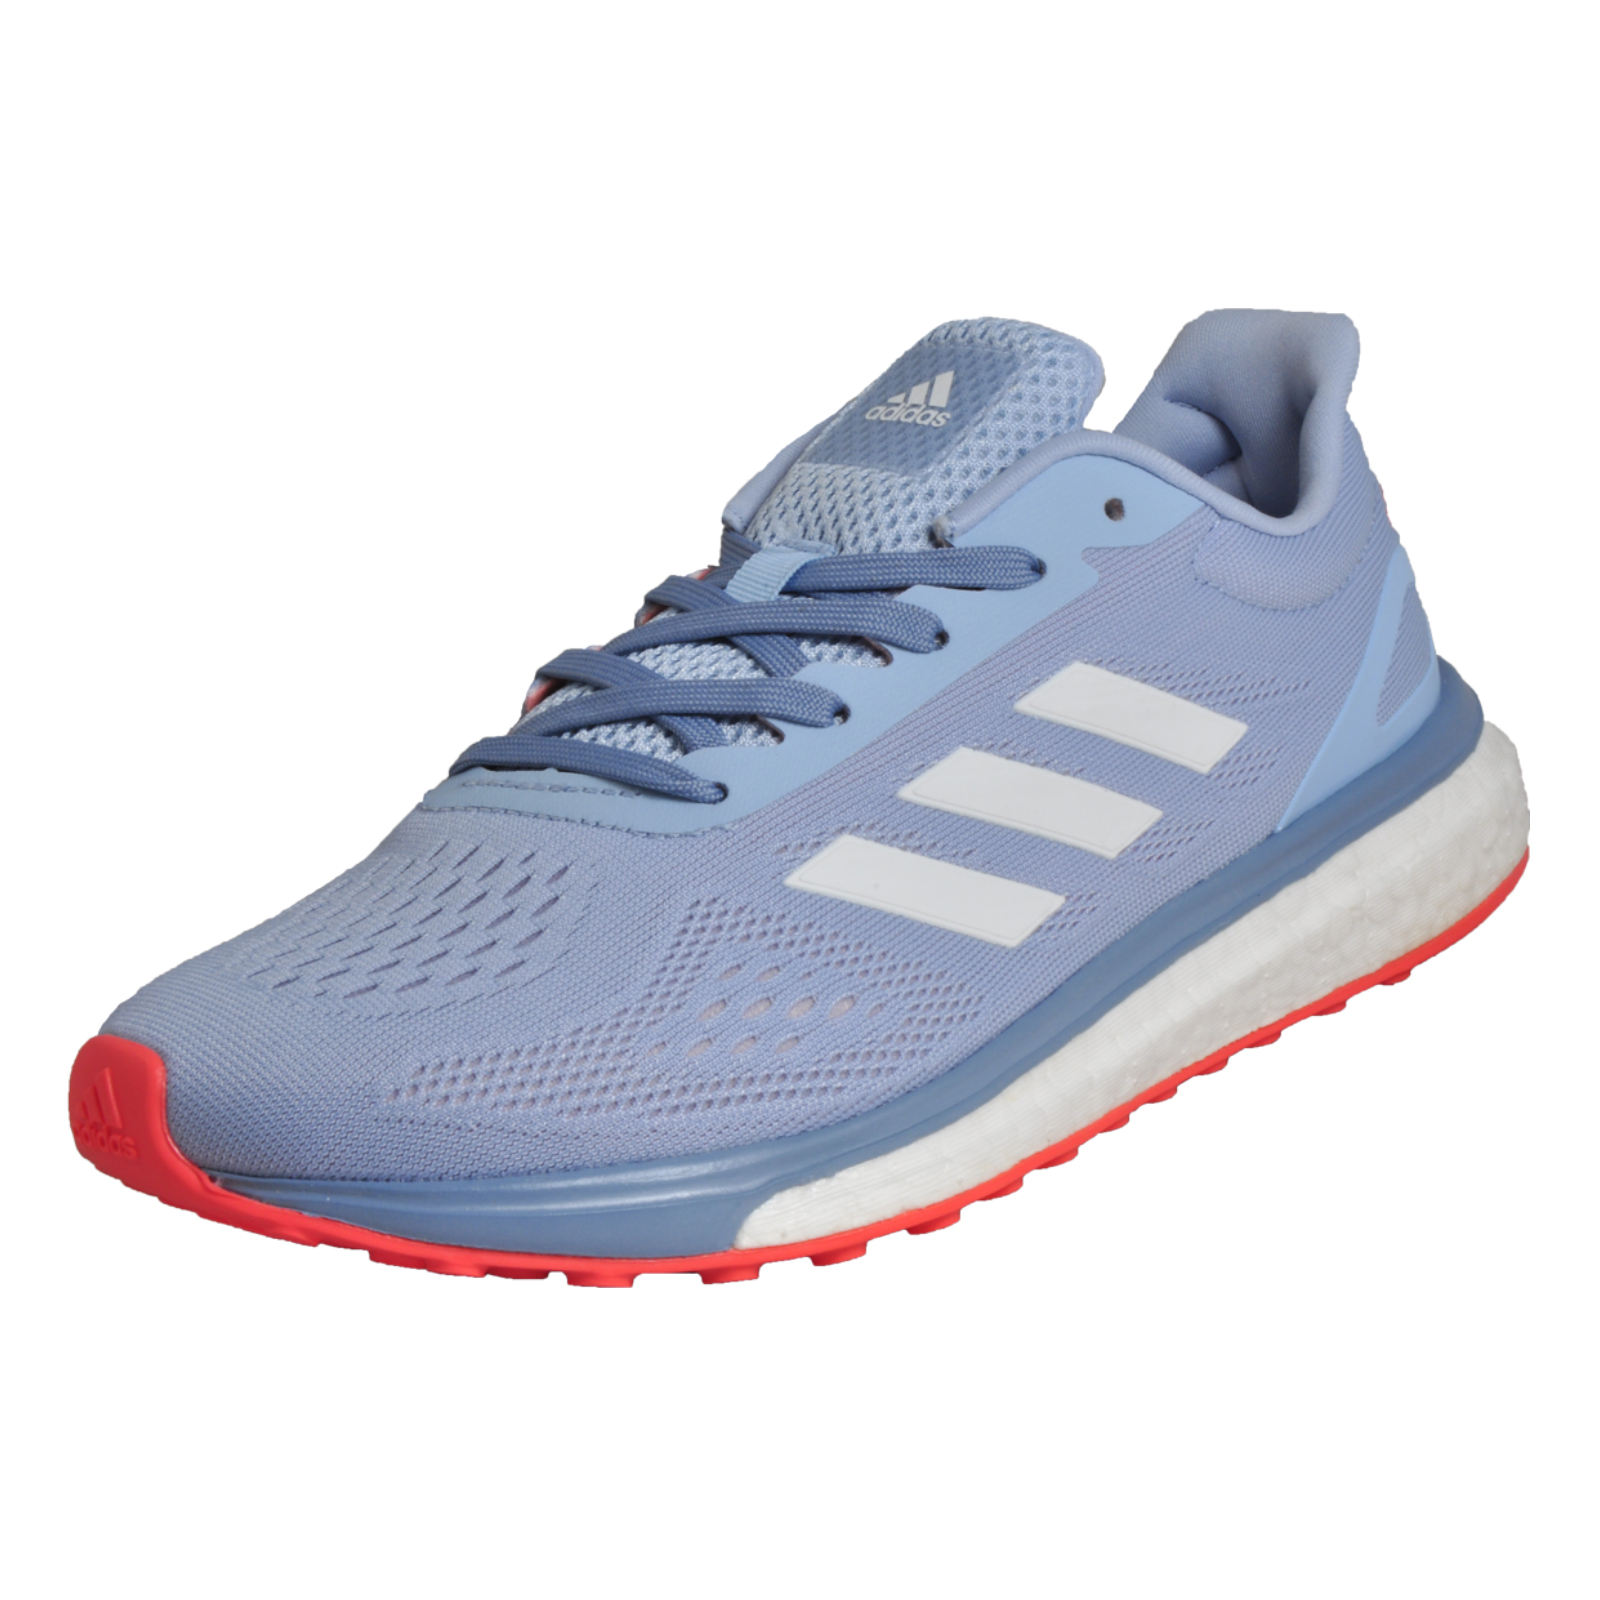 e59f157c373 Details about Adidas Response LT Womens Premium Running Shoes Fitness Gym Trainers  Blue